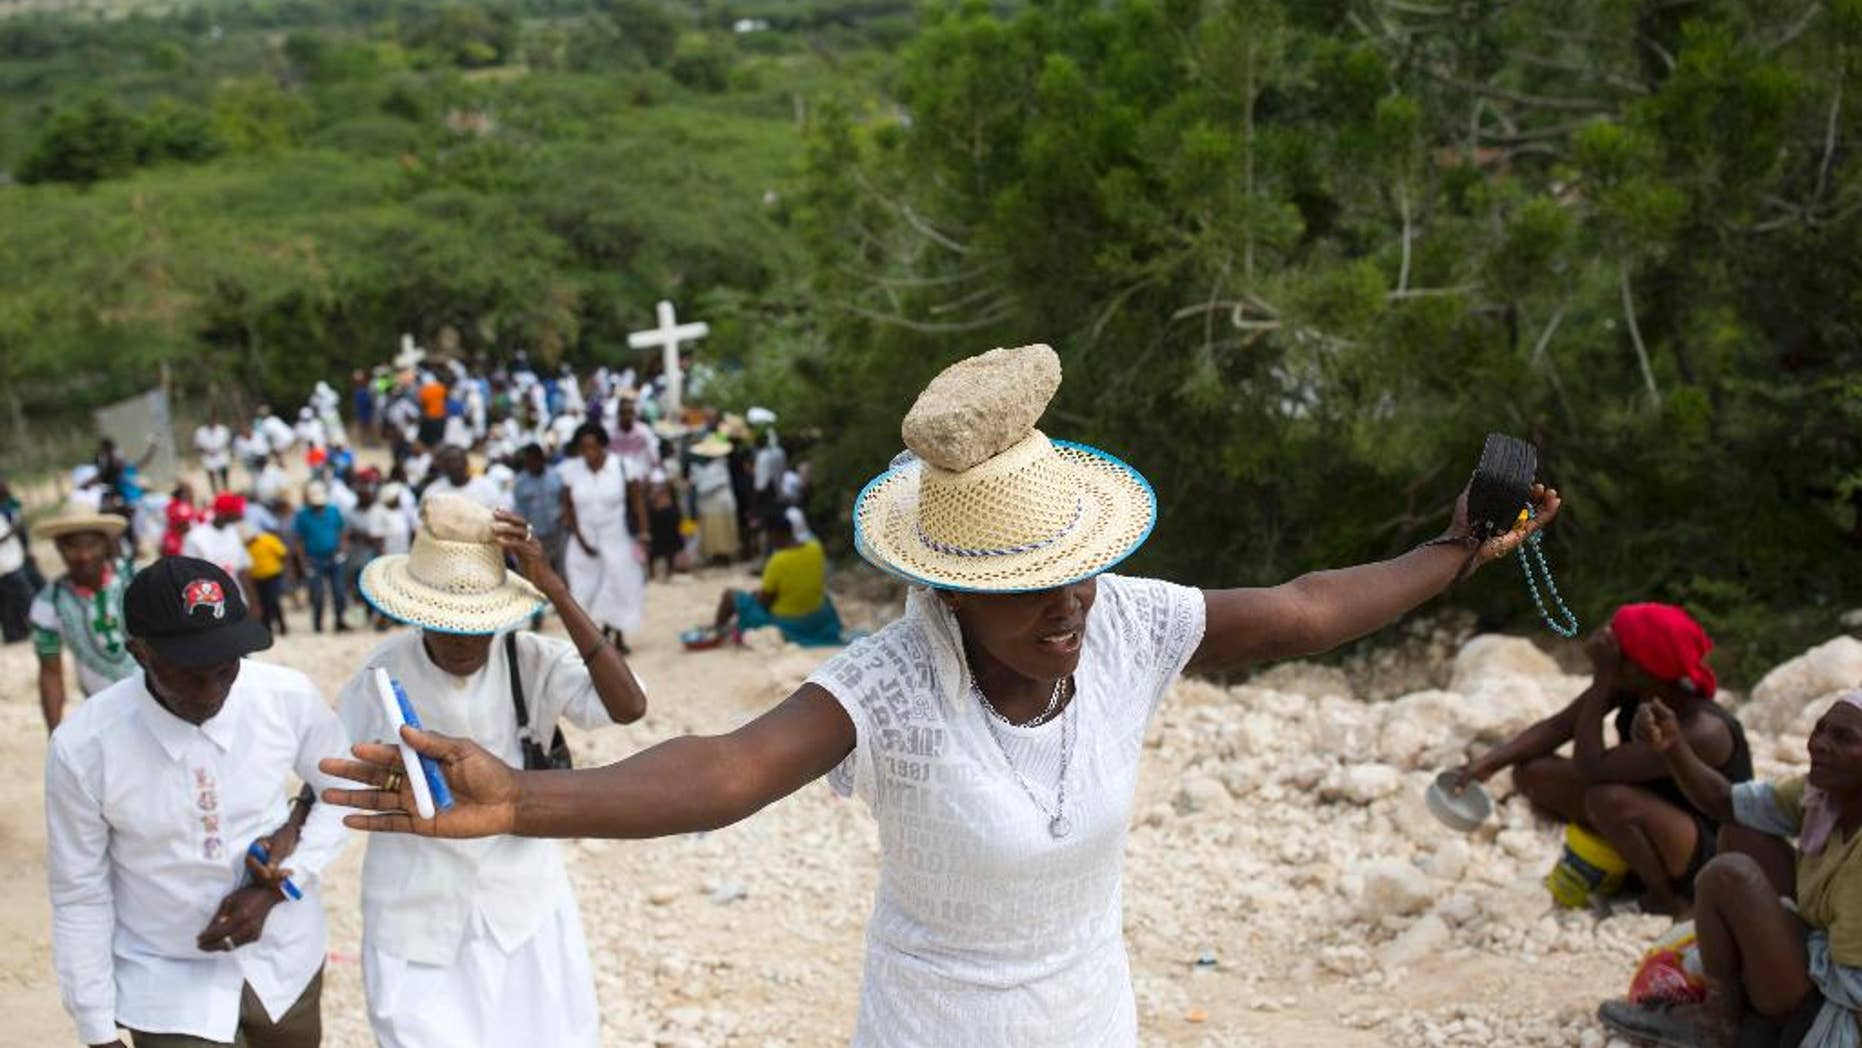 At least 11 dead in Haiti quake : govt spokesman